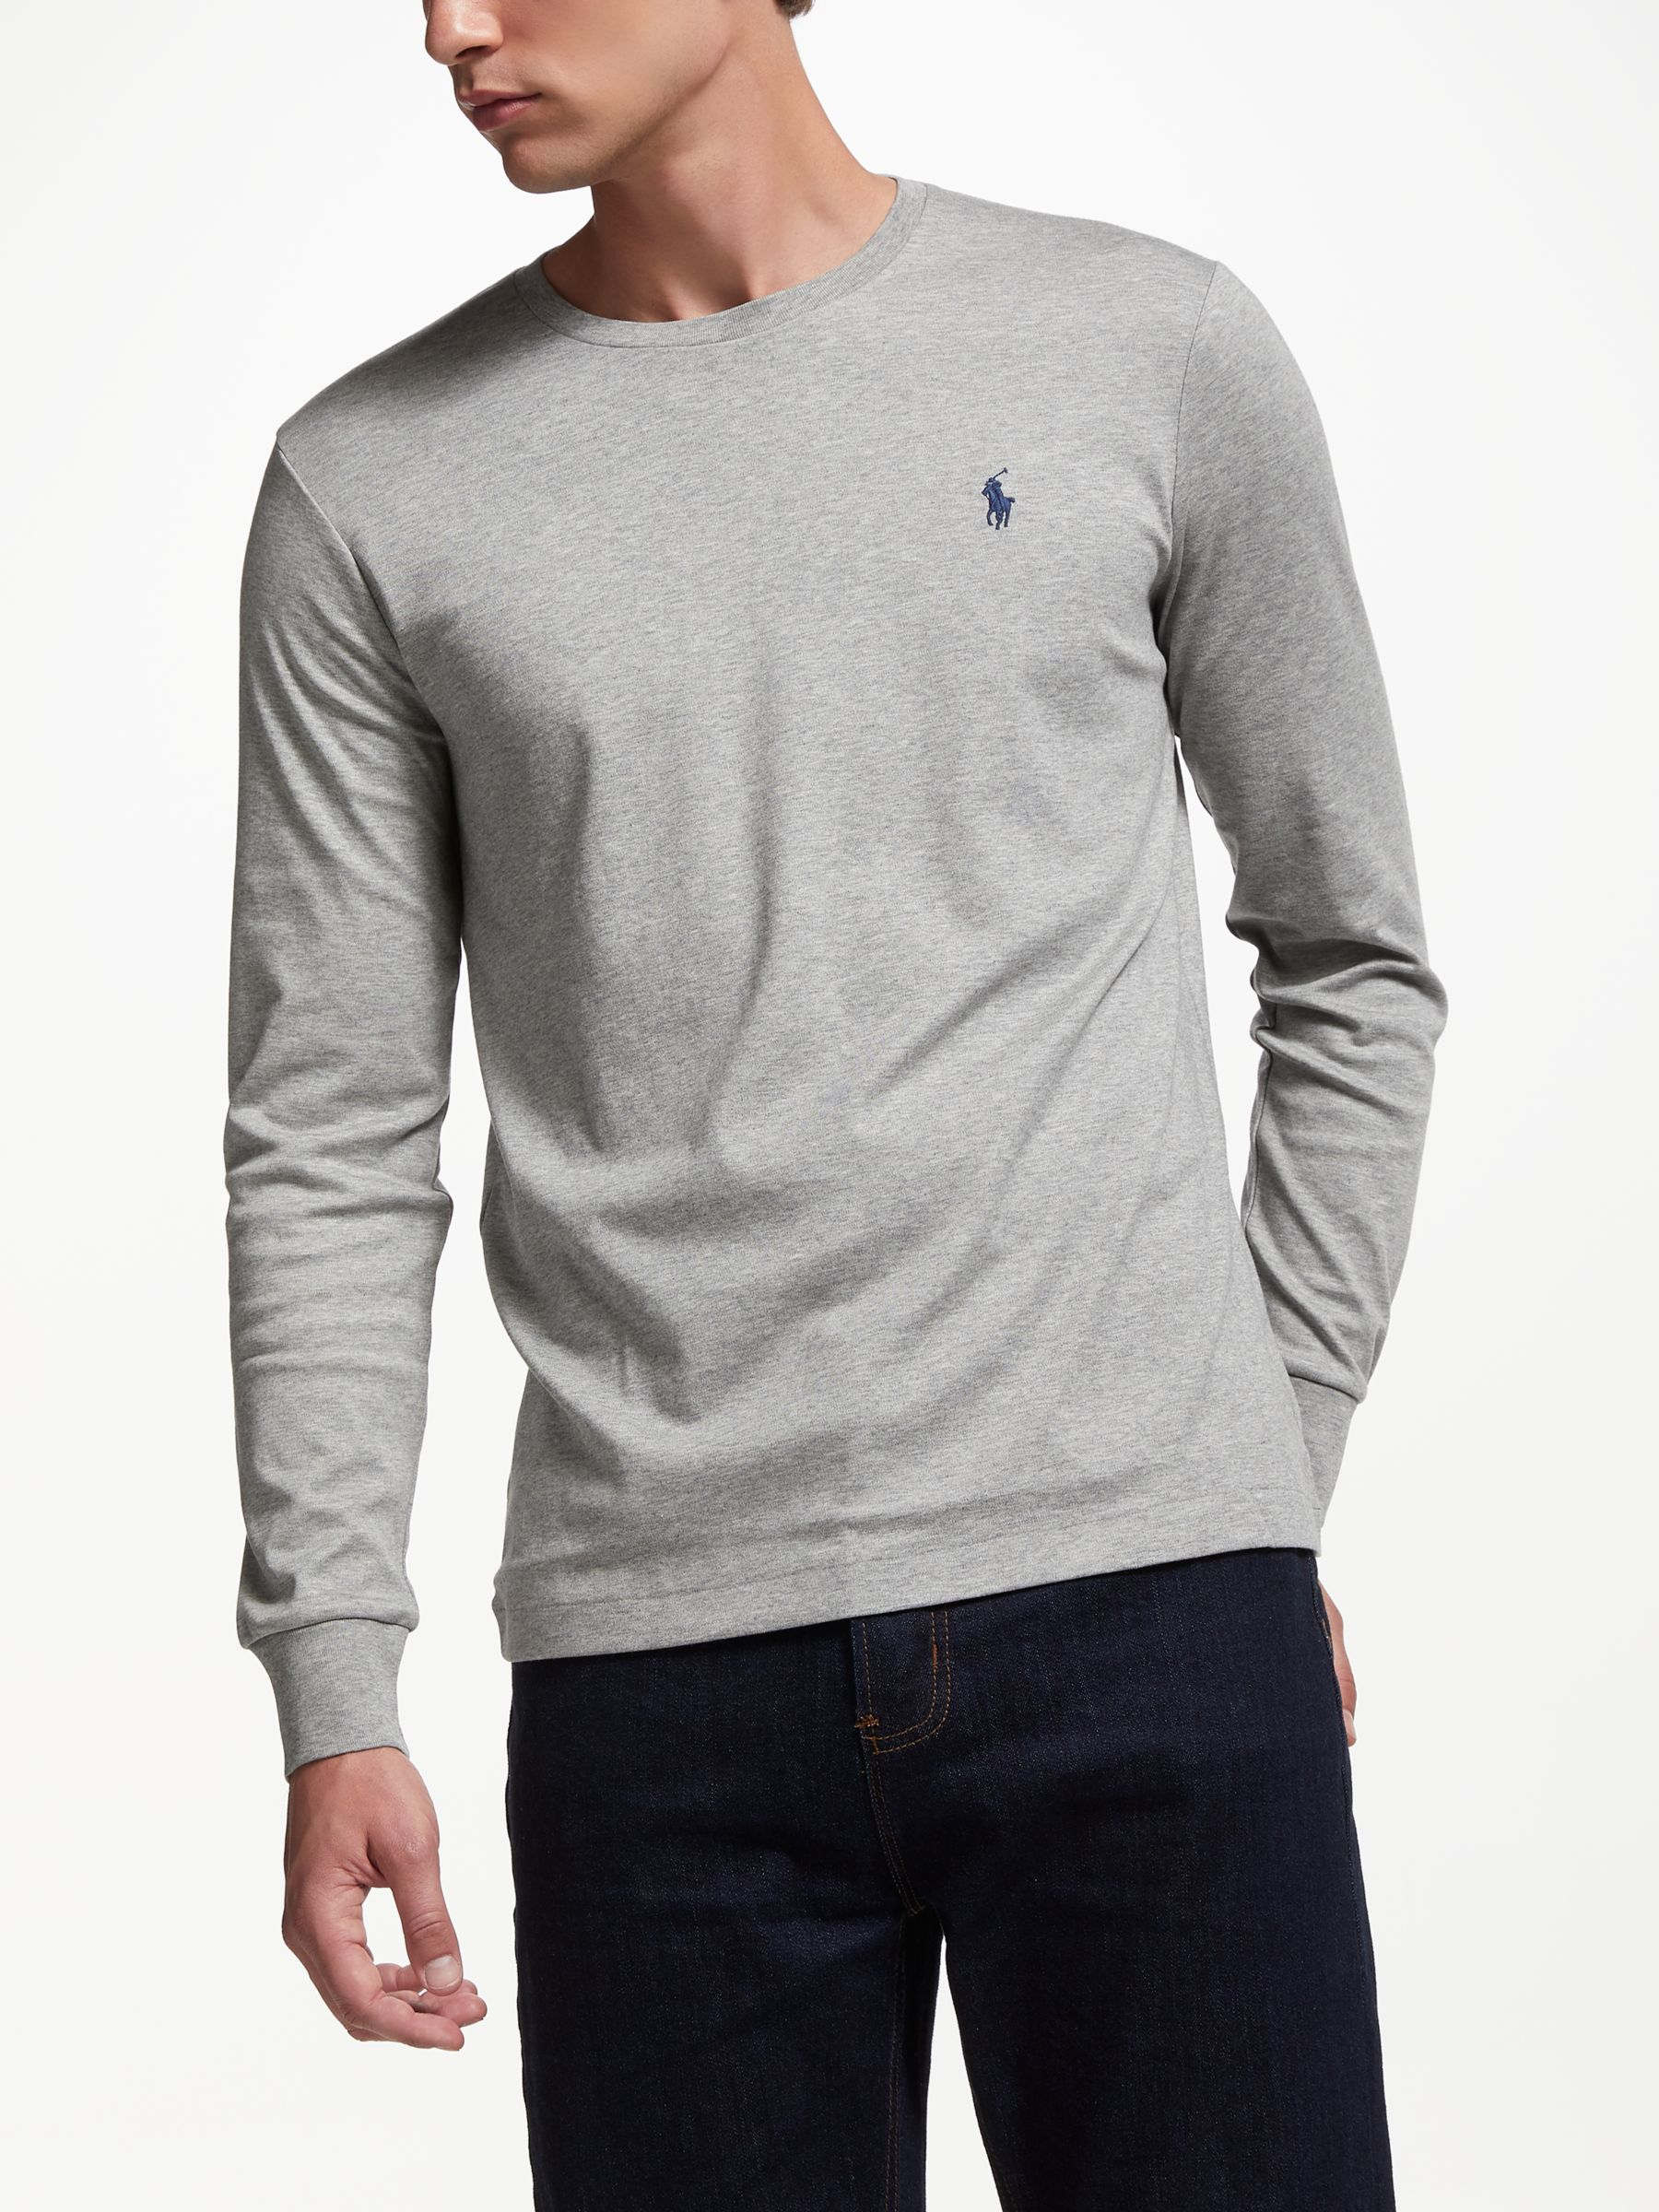 ralph lauren polo long sleeve t shirt